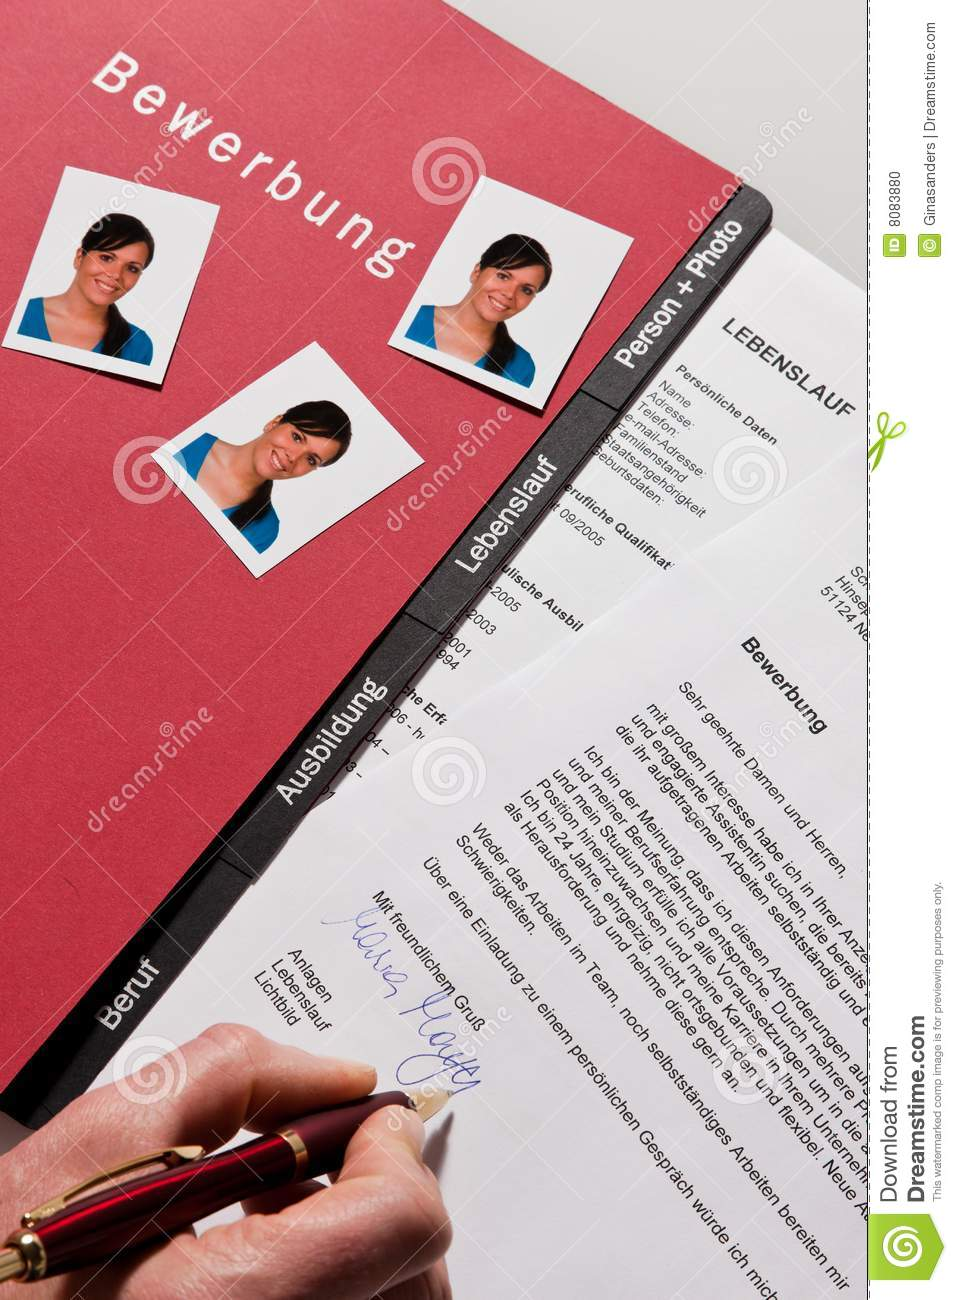 cv et lettre d u0026 39 application en allemand photo stock